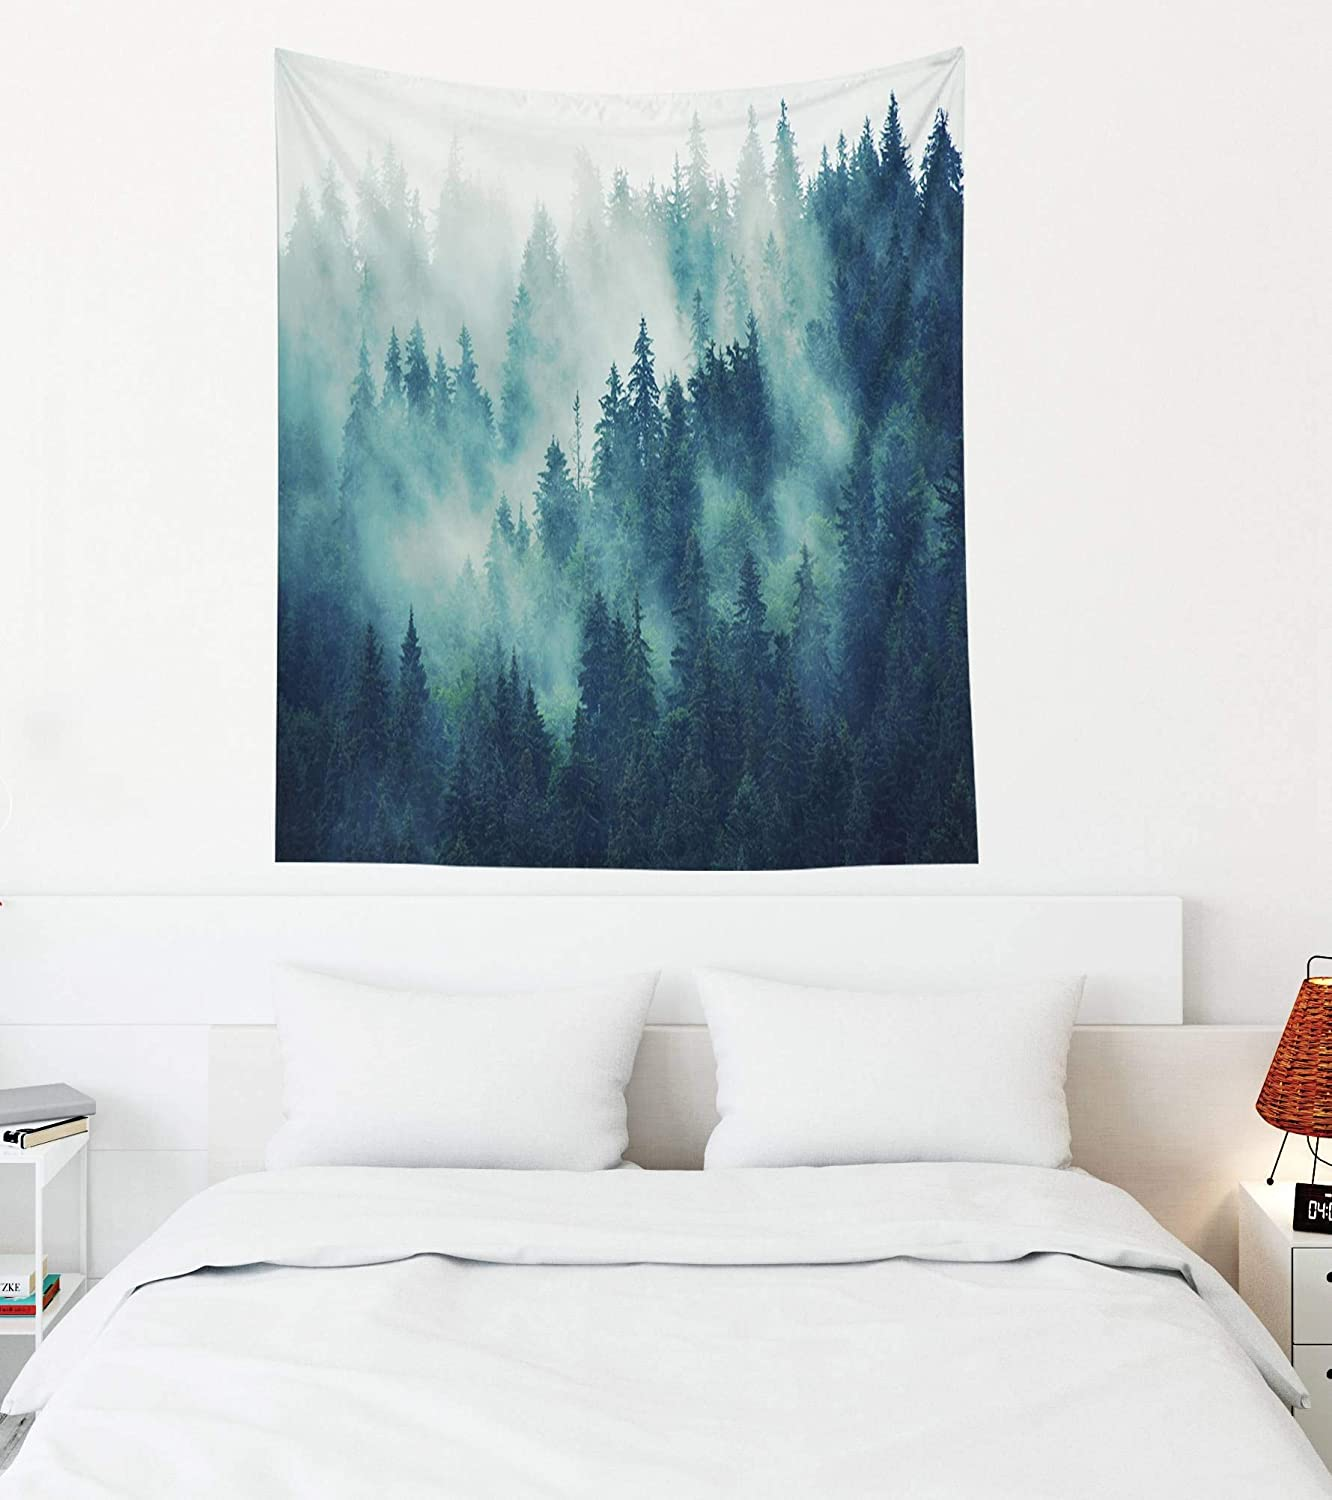 EMMTEEY Thin Tapestry Wall Hanging,Tapestries Décor Living Room Bedroom for Home Inhouse by Printed 50X60 Inches for Landscape with Fir Forest in Hipster Vintage Retro Style